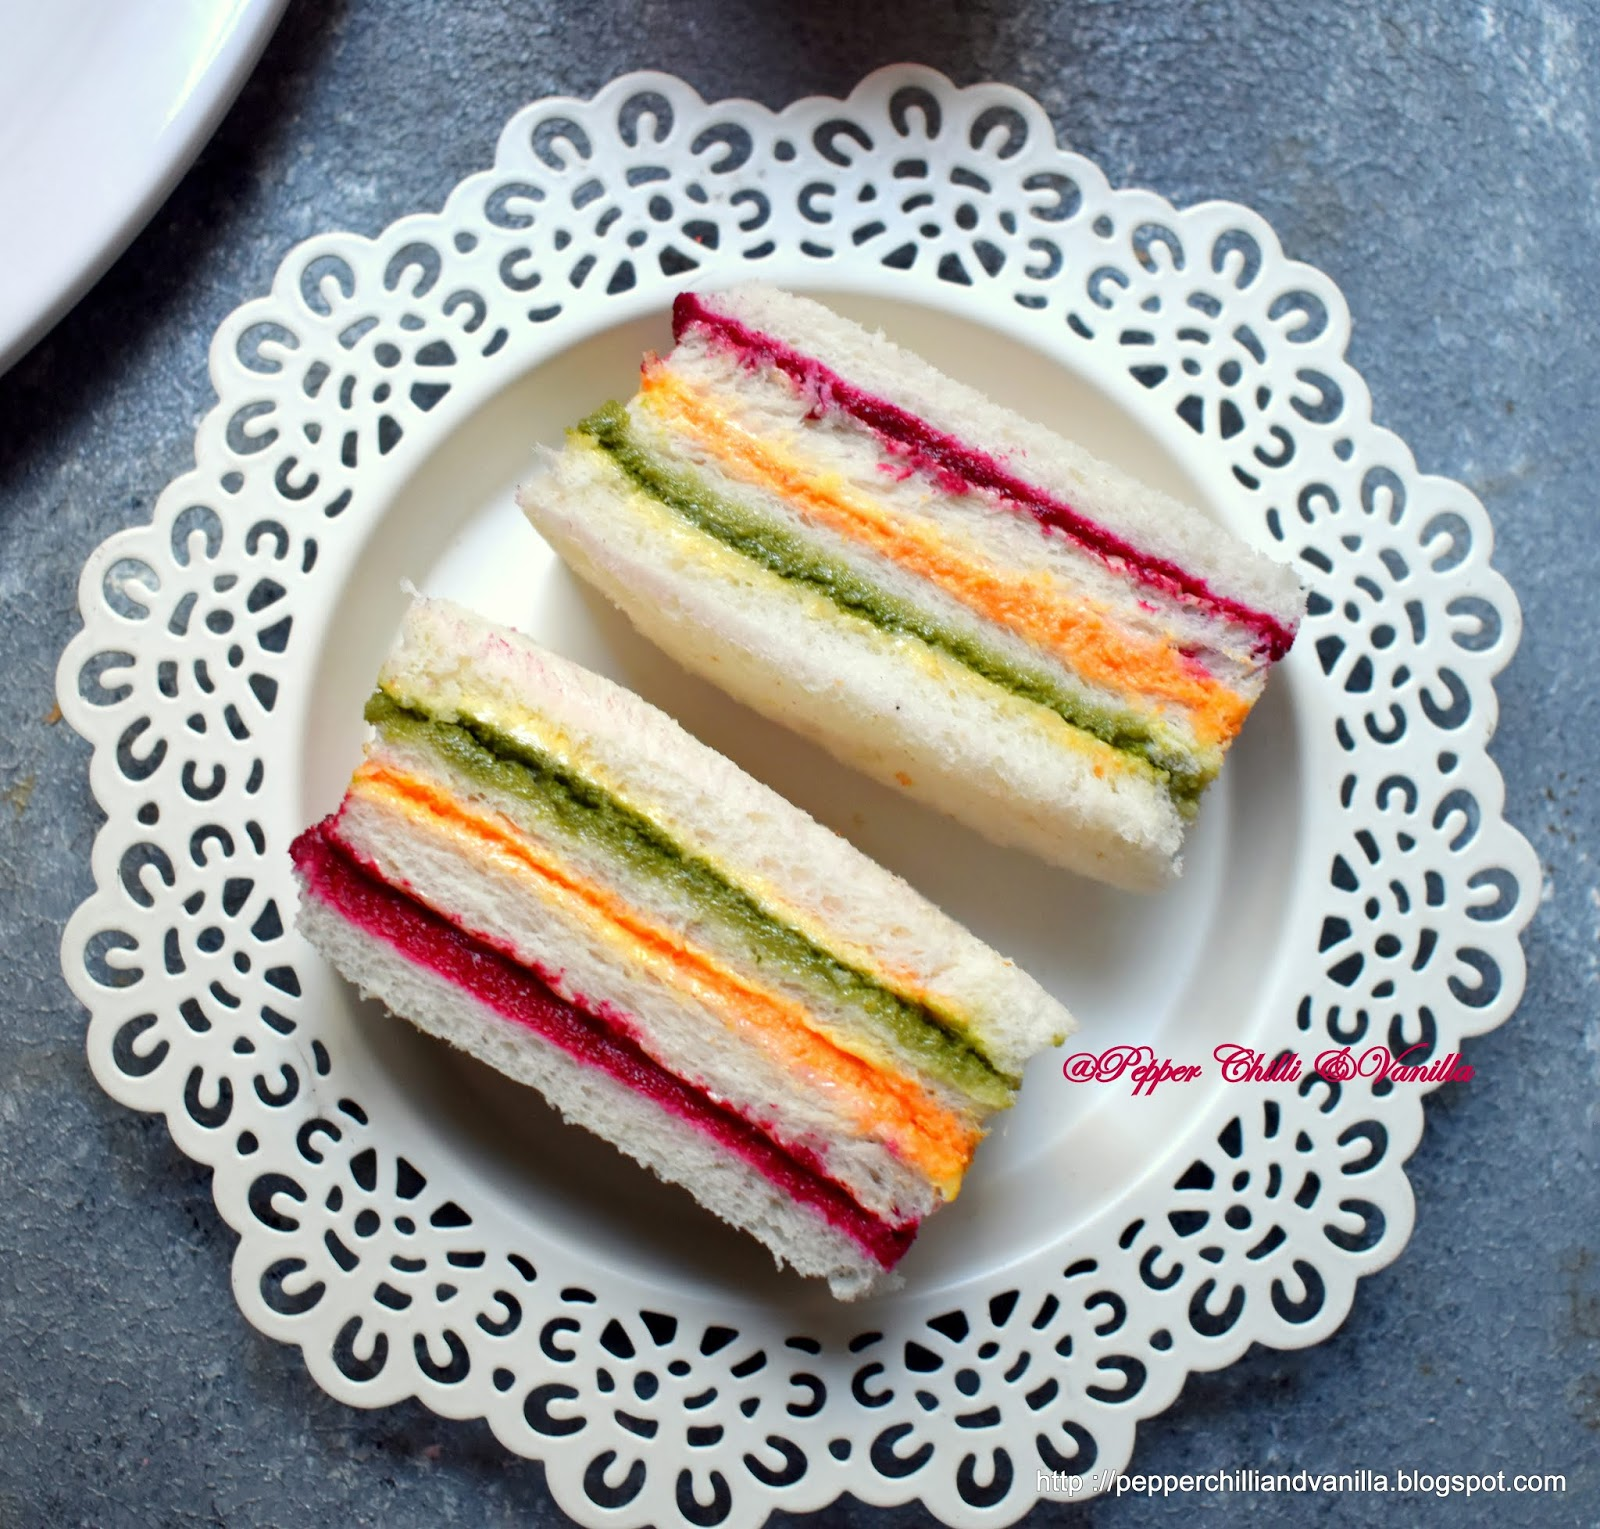 party sandwiches,finger food,party sandwiches,recipe for kids,coloured sandwiches,healthy sandwiches for kids